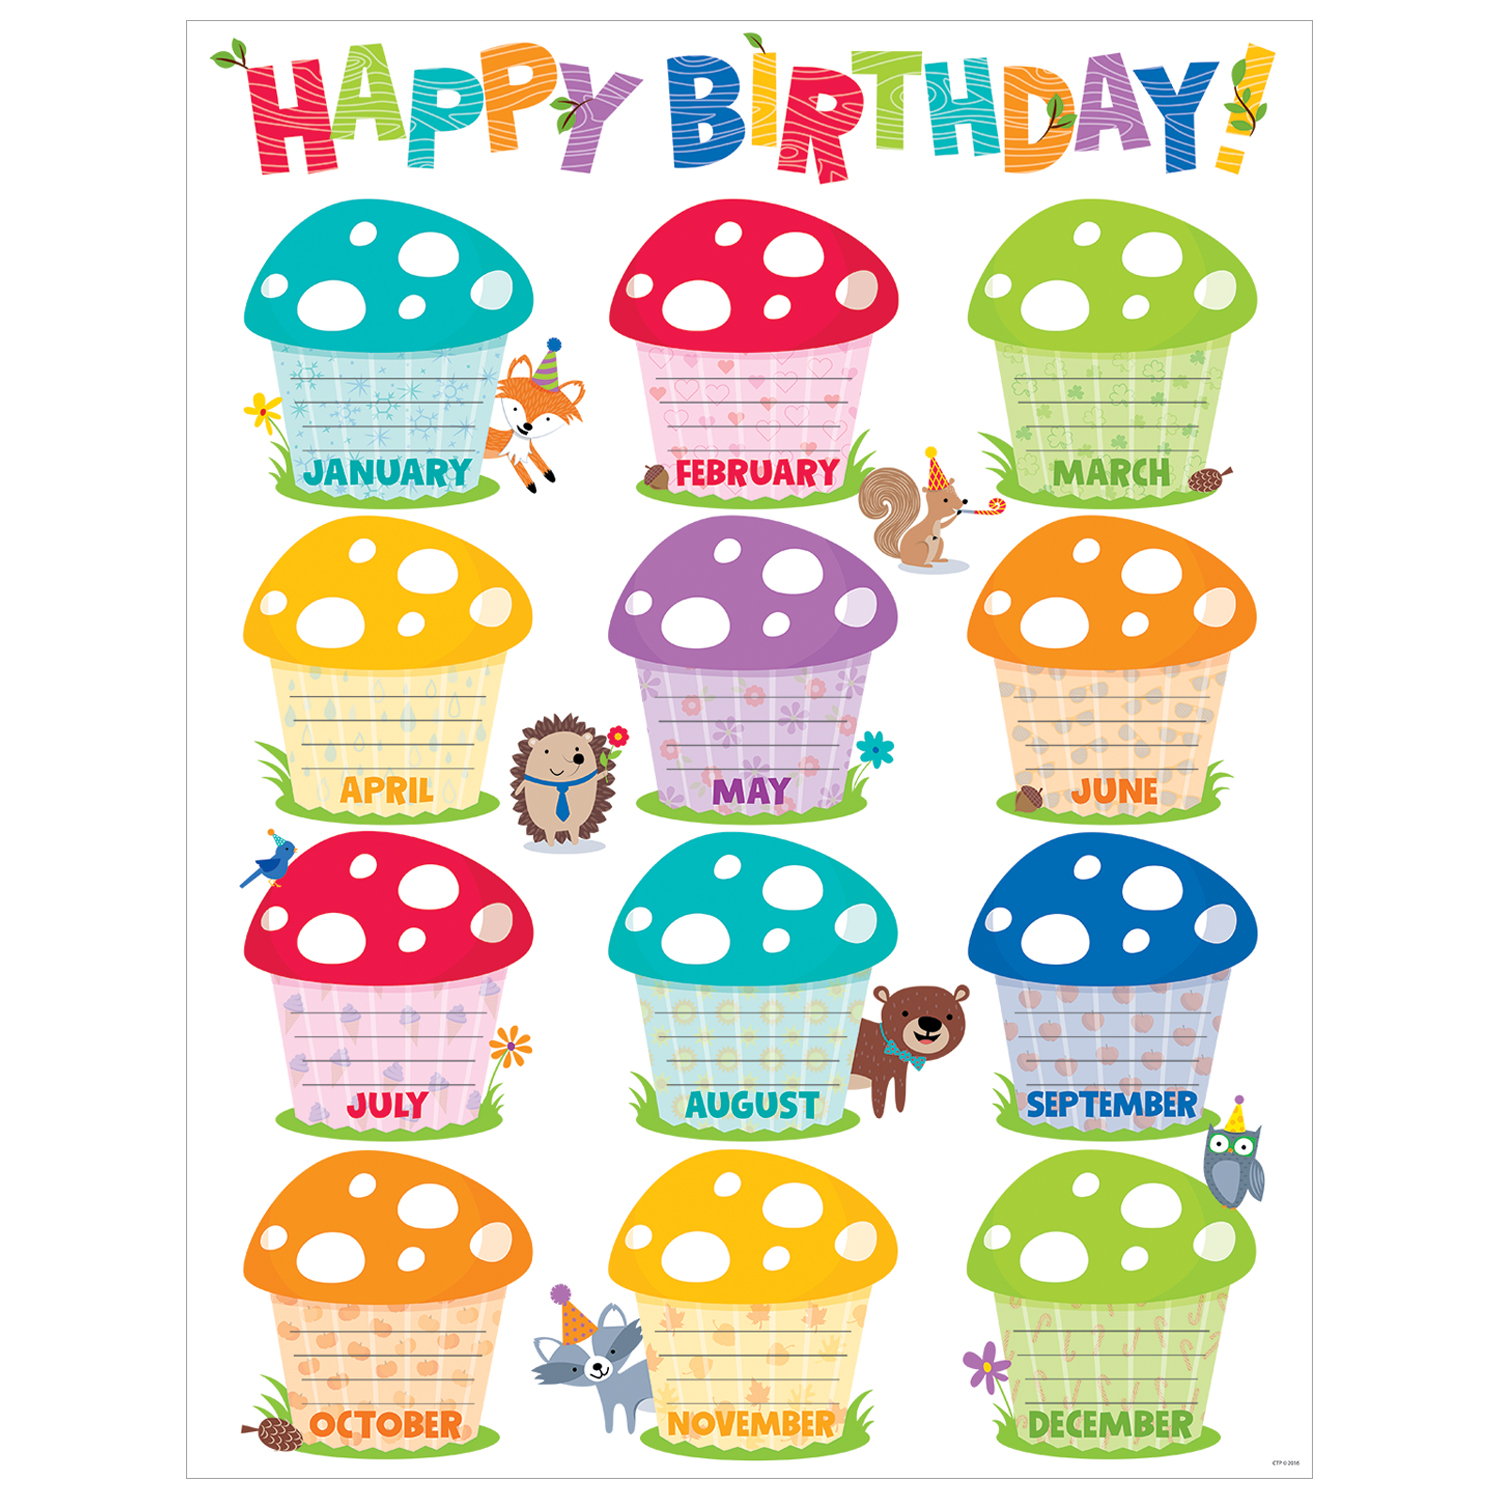 classroom birthday chart template ; happy-birthday-chart--woodland-friends_1